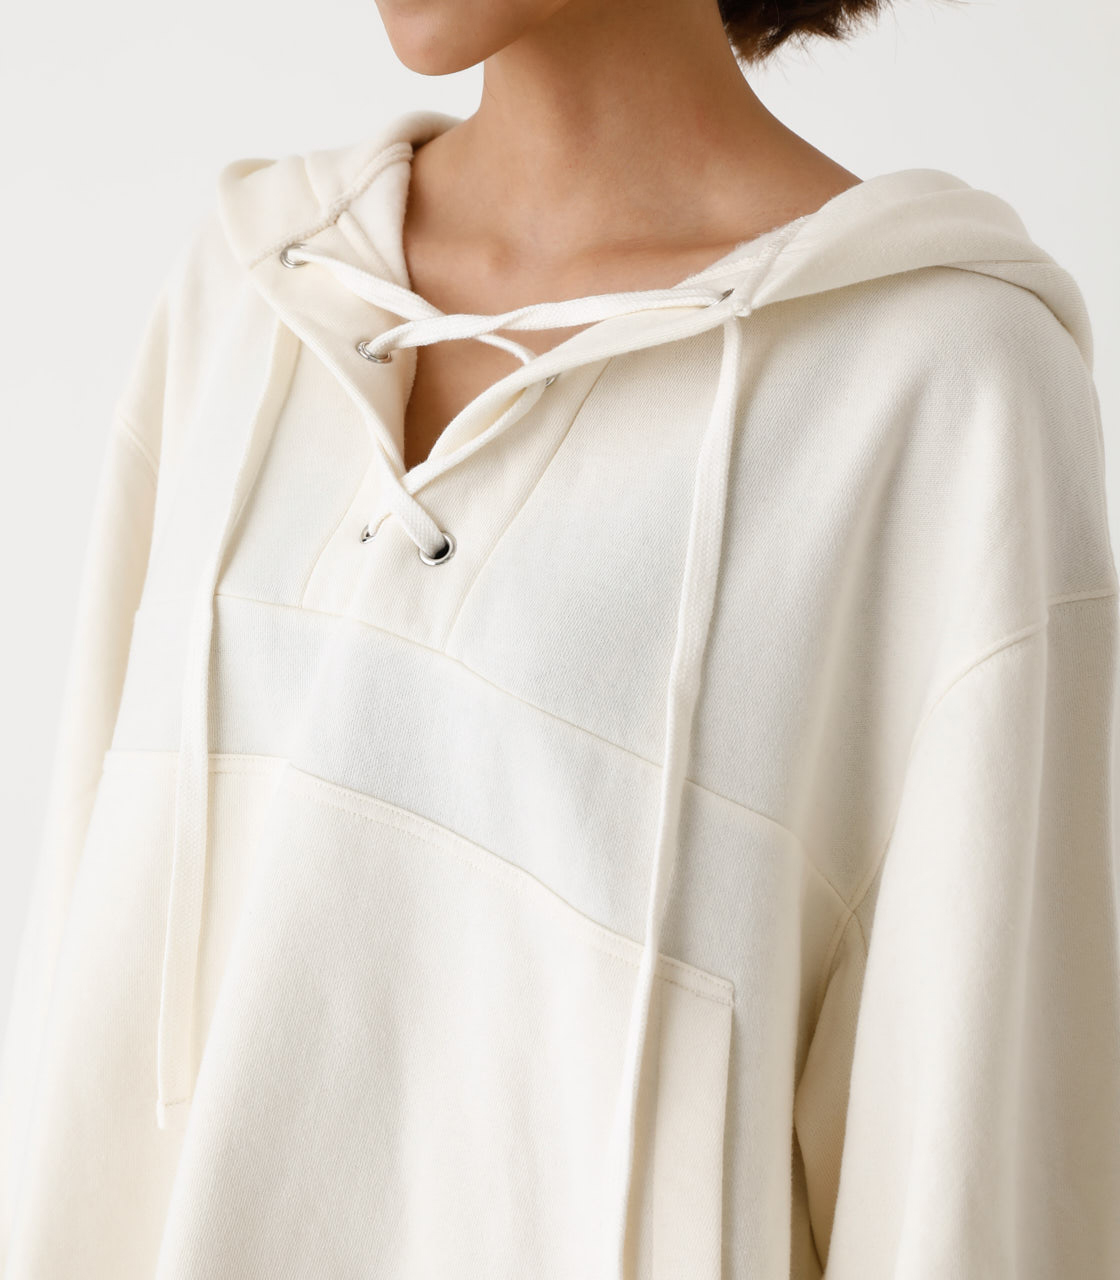 LACE-UP LOOSE HOODIE/レースアップルーズフーディ 詳細画像 IVOY 7